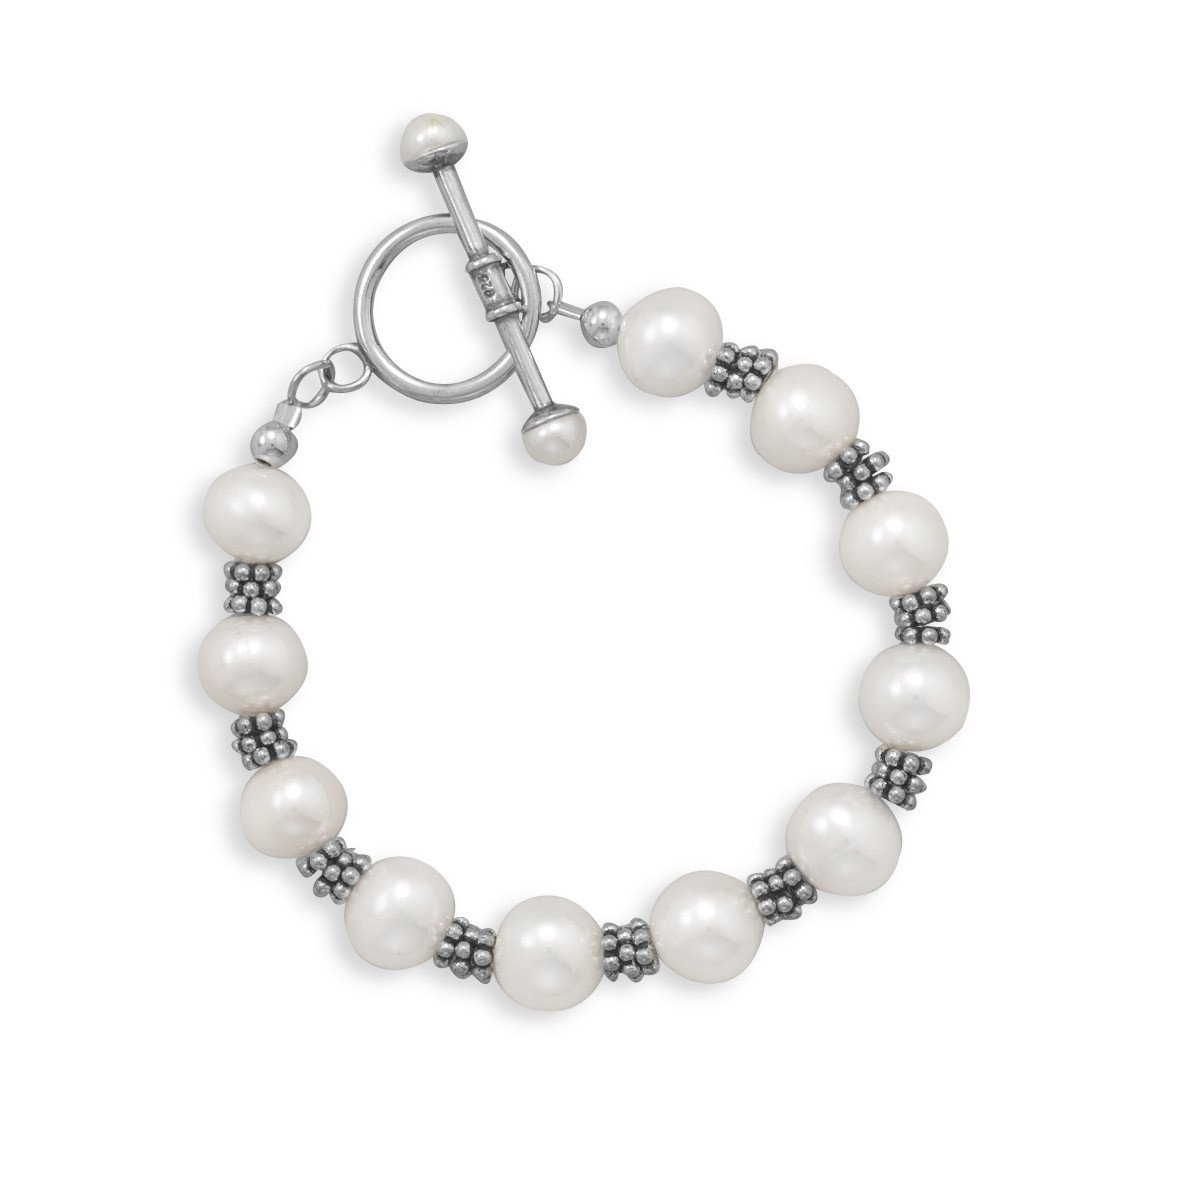 7″ White Cultured Freshwater Pearl Toggle Bracelet